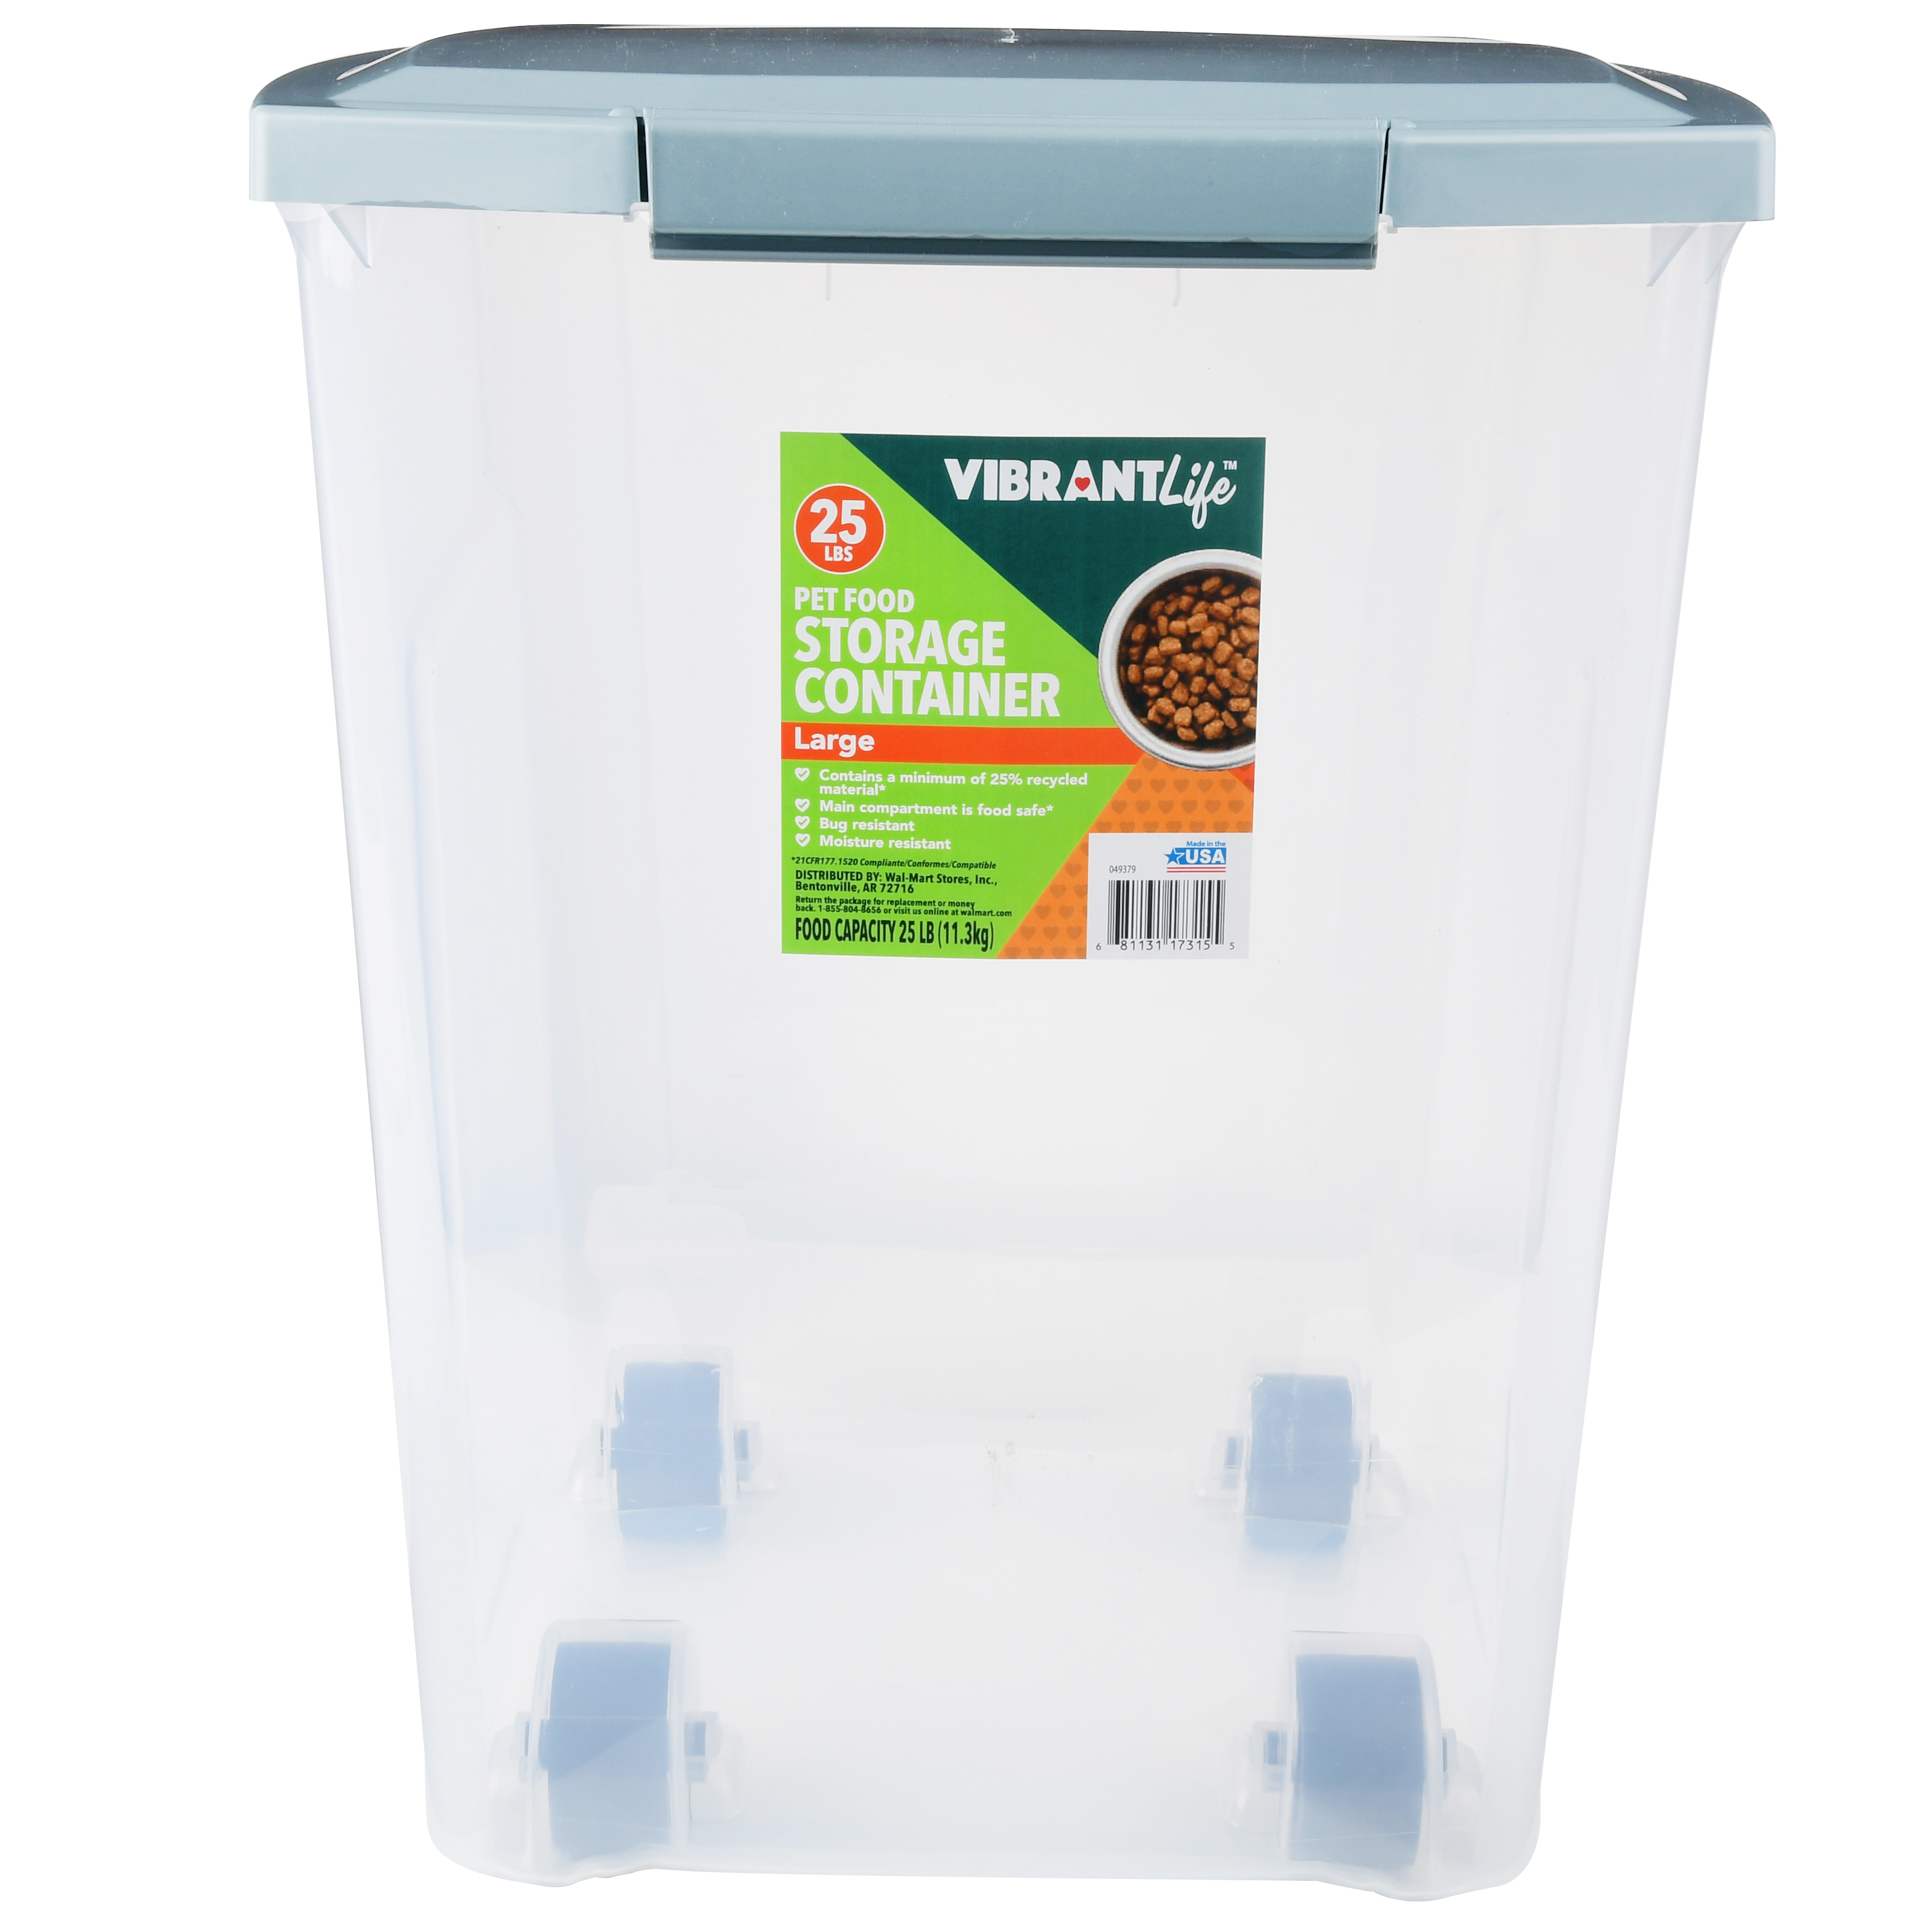 Vibrant Life Pet Food Storage, 25 lb